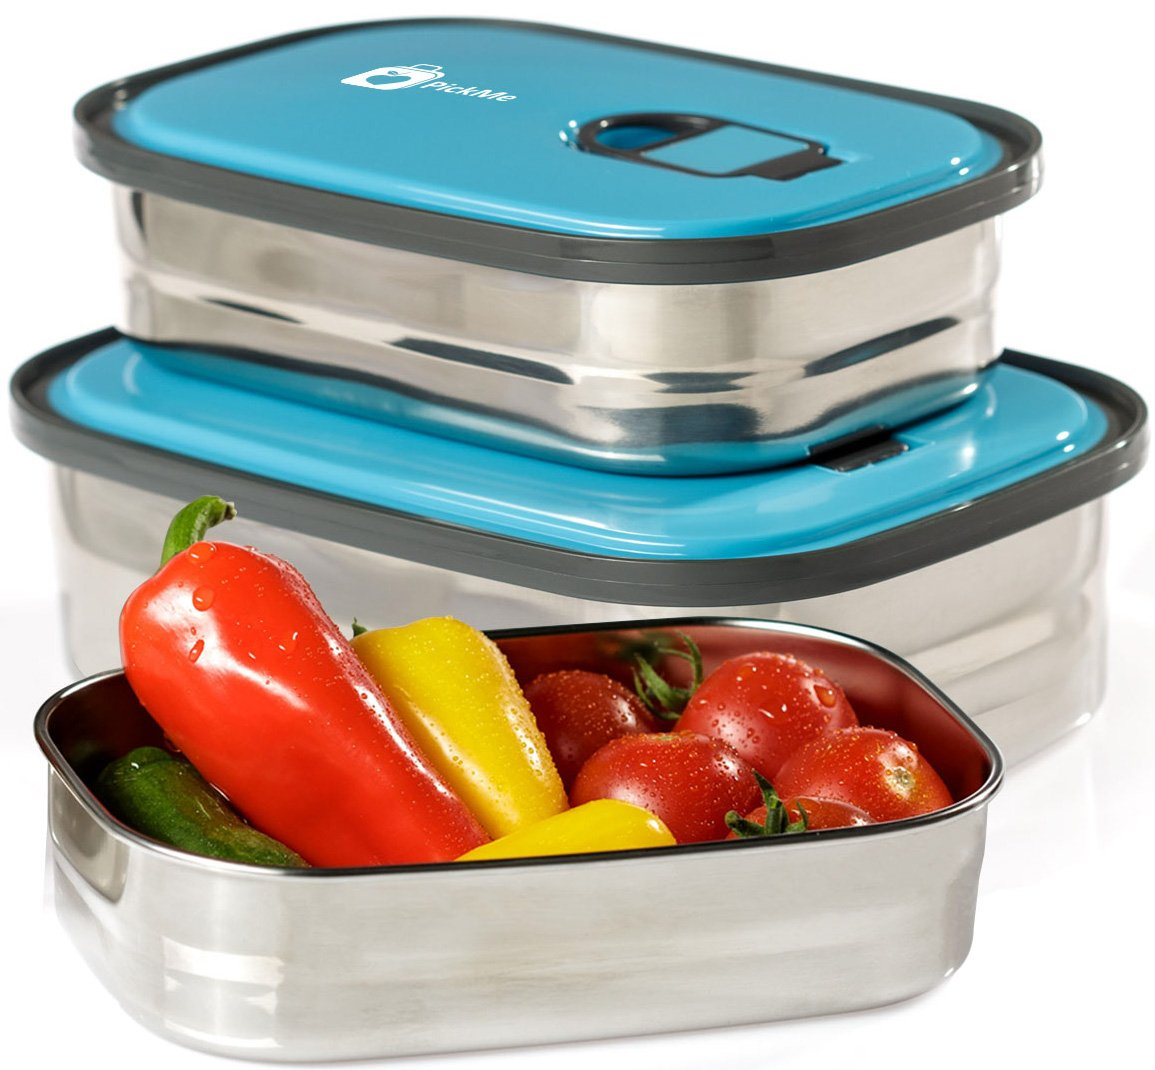 Best Food Storage Containers: 10 Great Options For You To